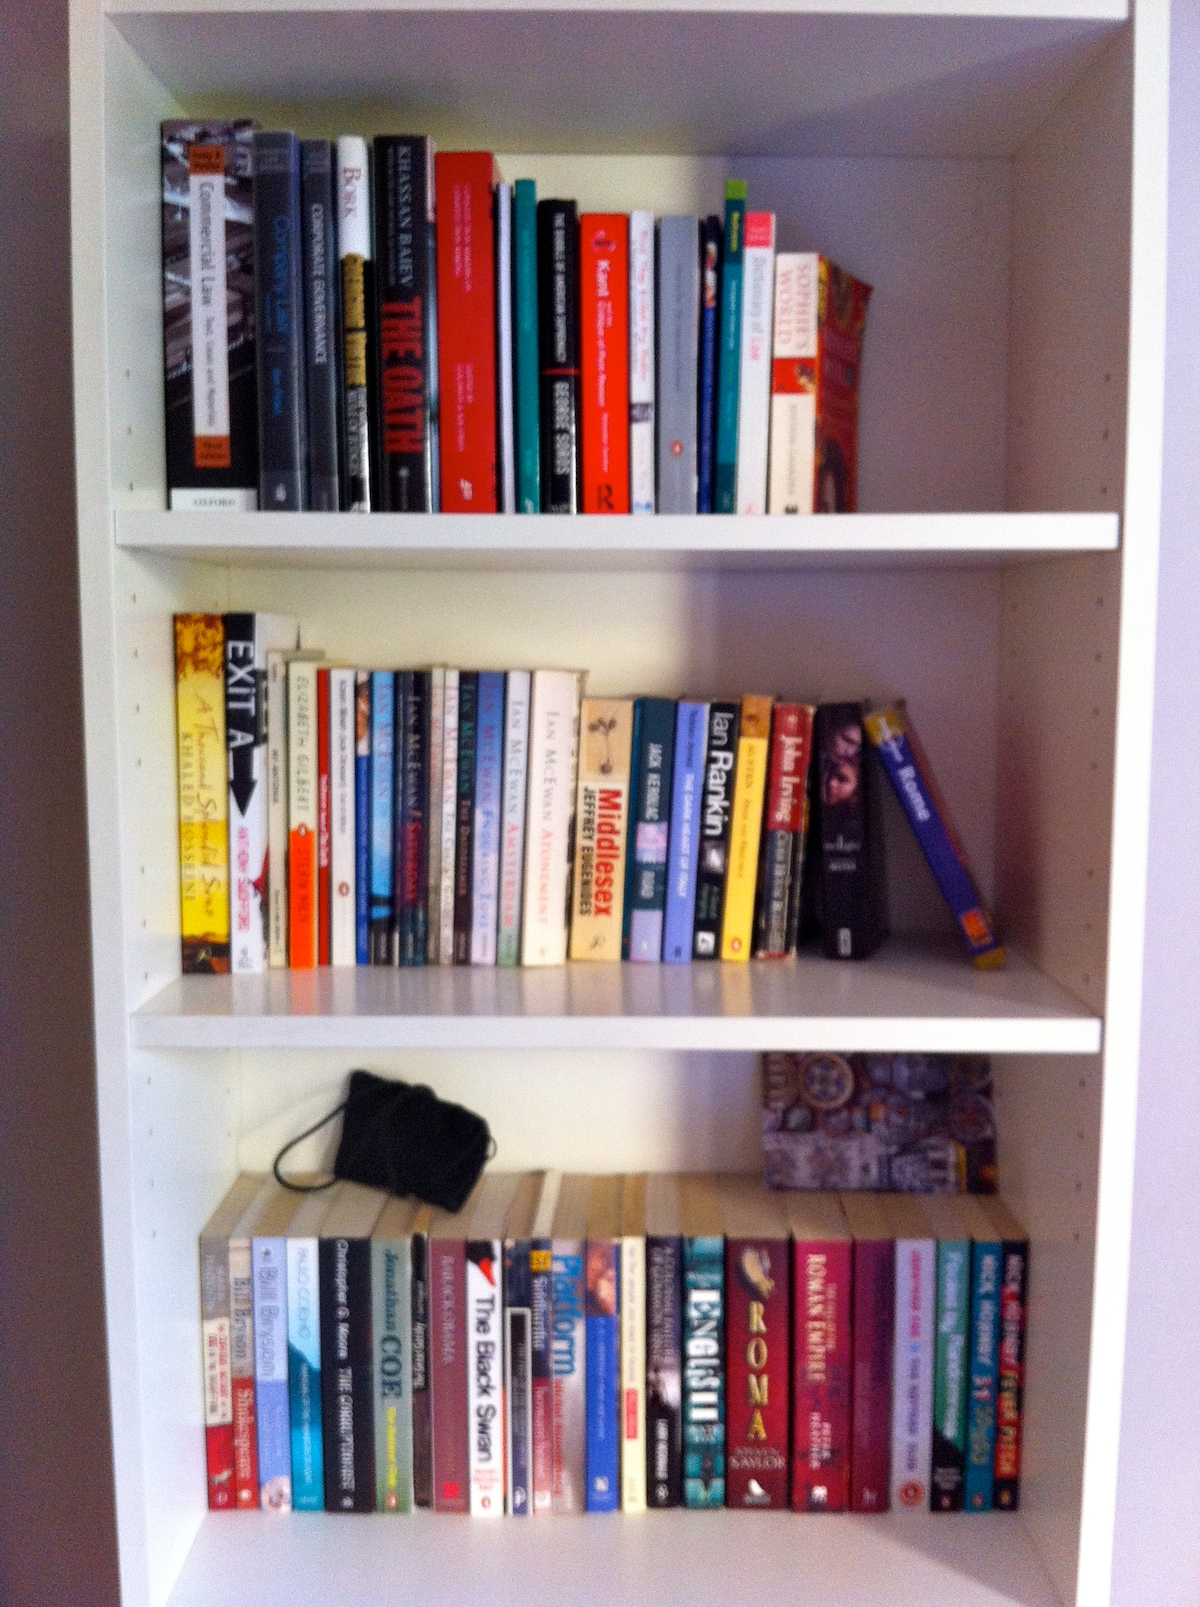 My English Books Library!